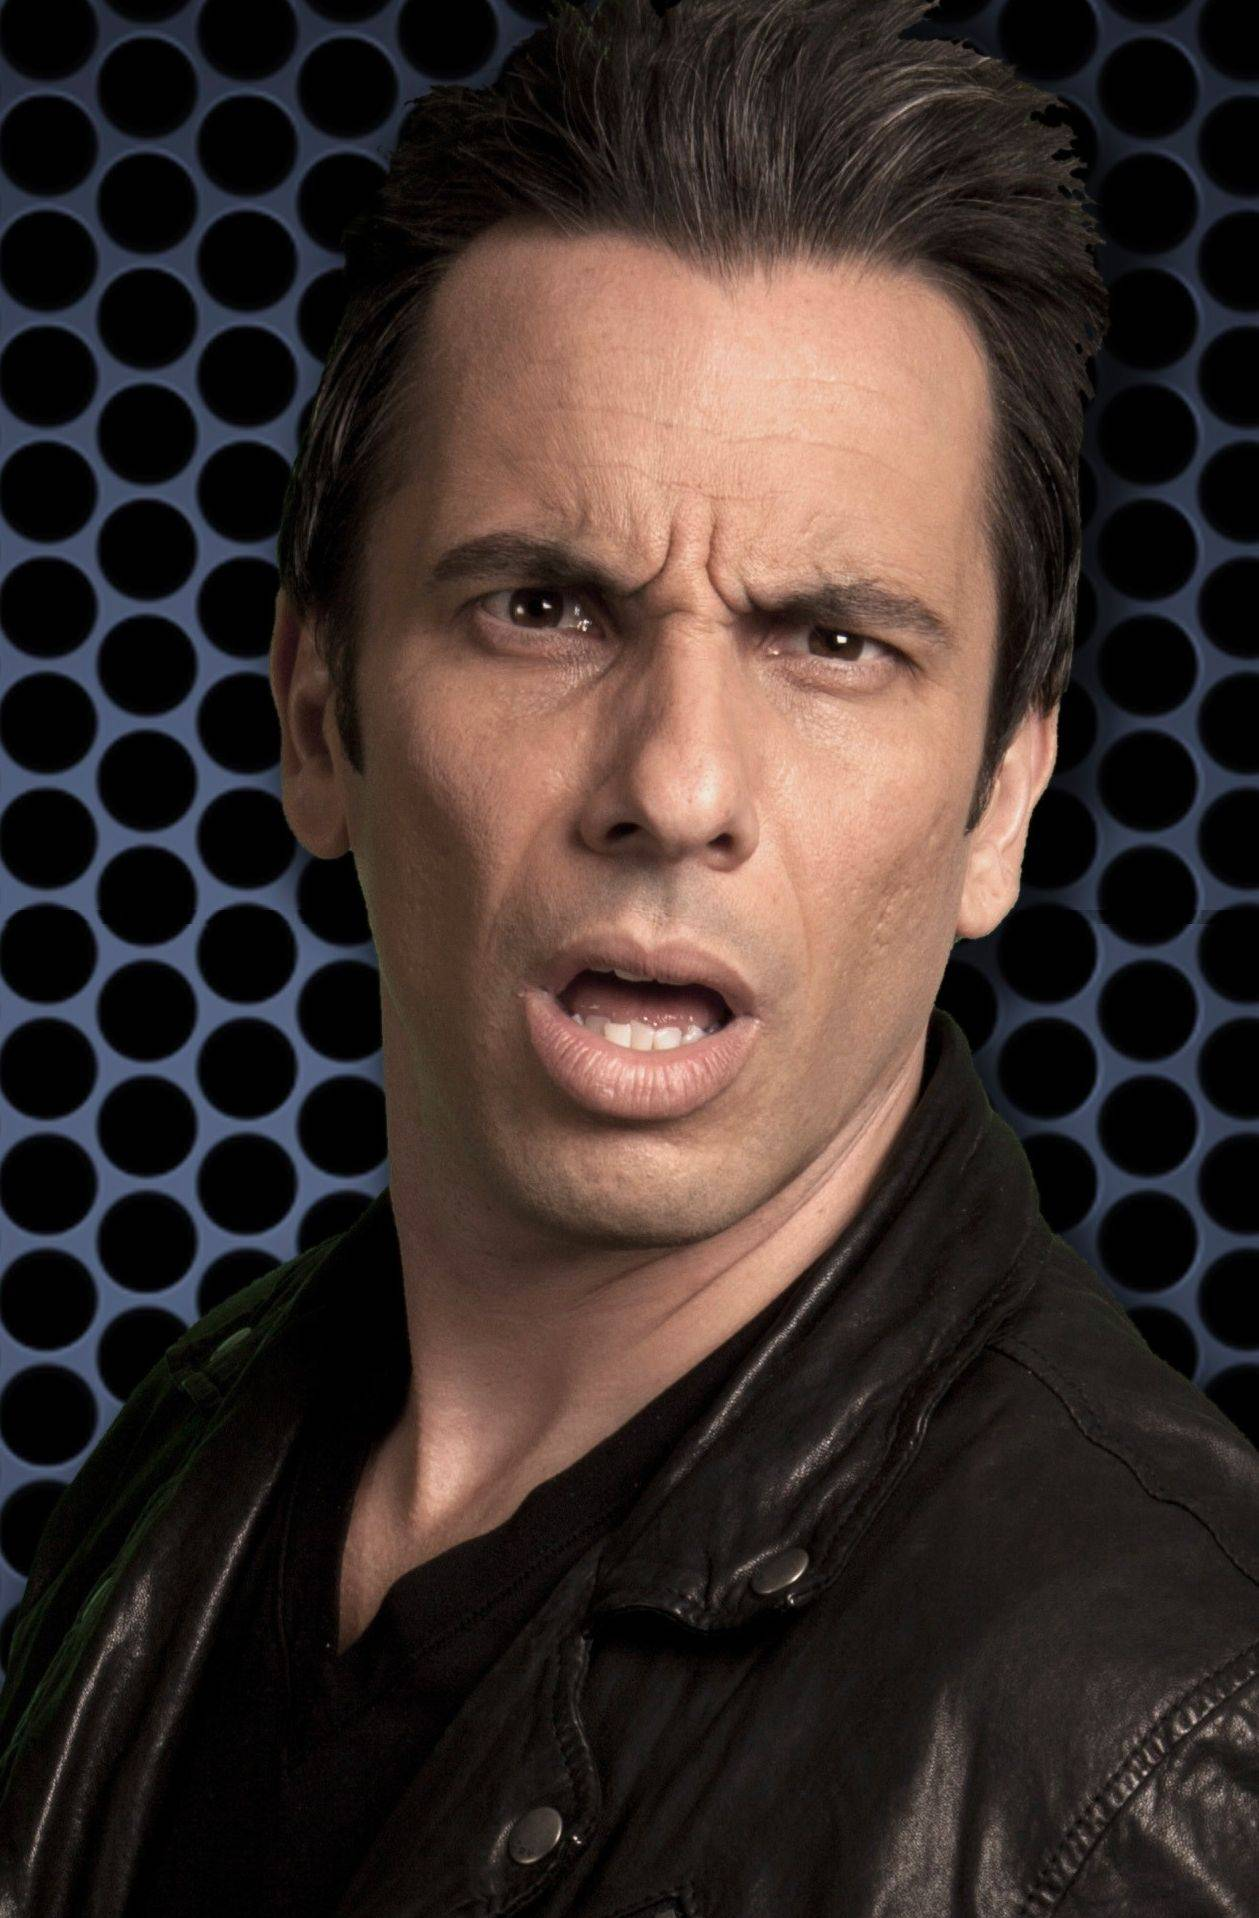 Comedian Sebastian Maniscalco, a native of Arlington Heights, returns home for a week's worth of shows at Zanies Comedy Club in Rosemont.